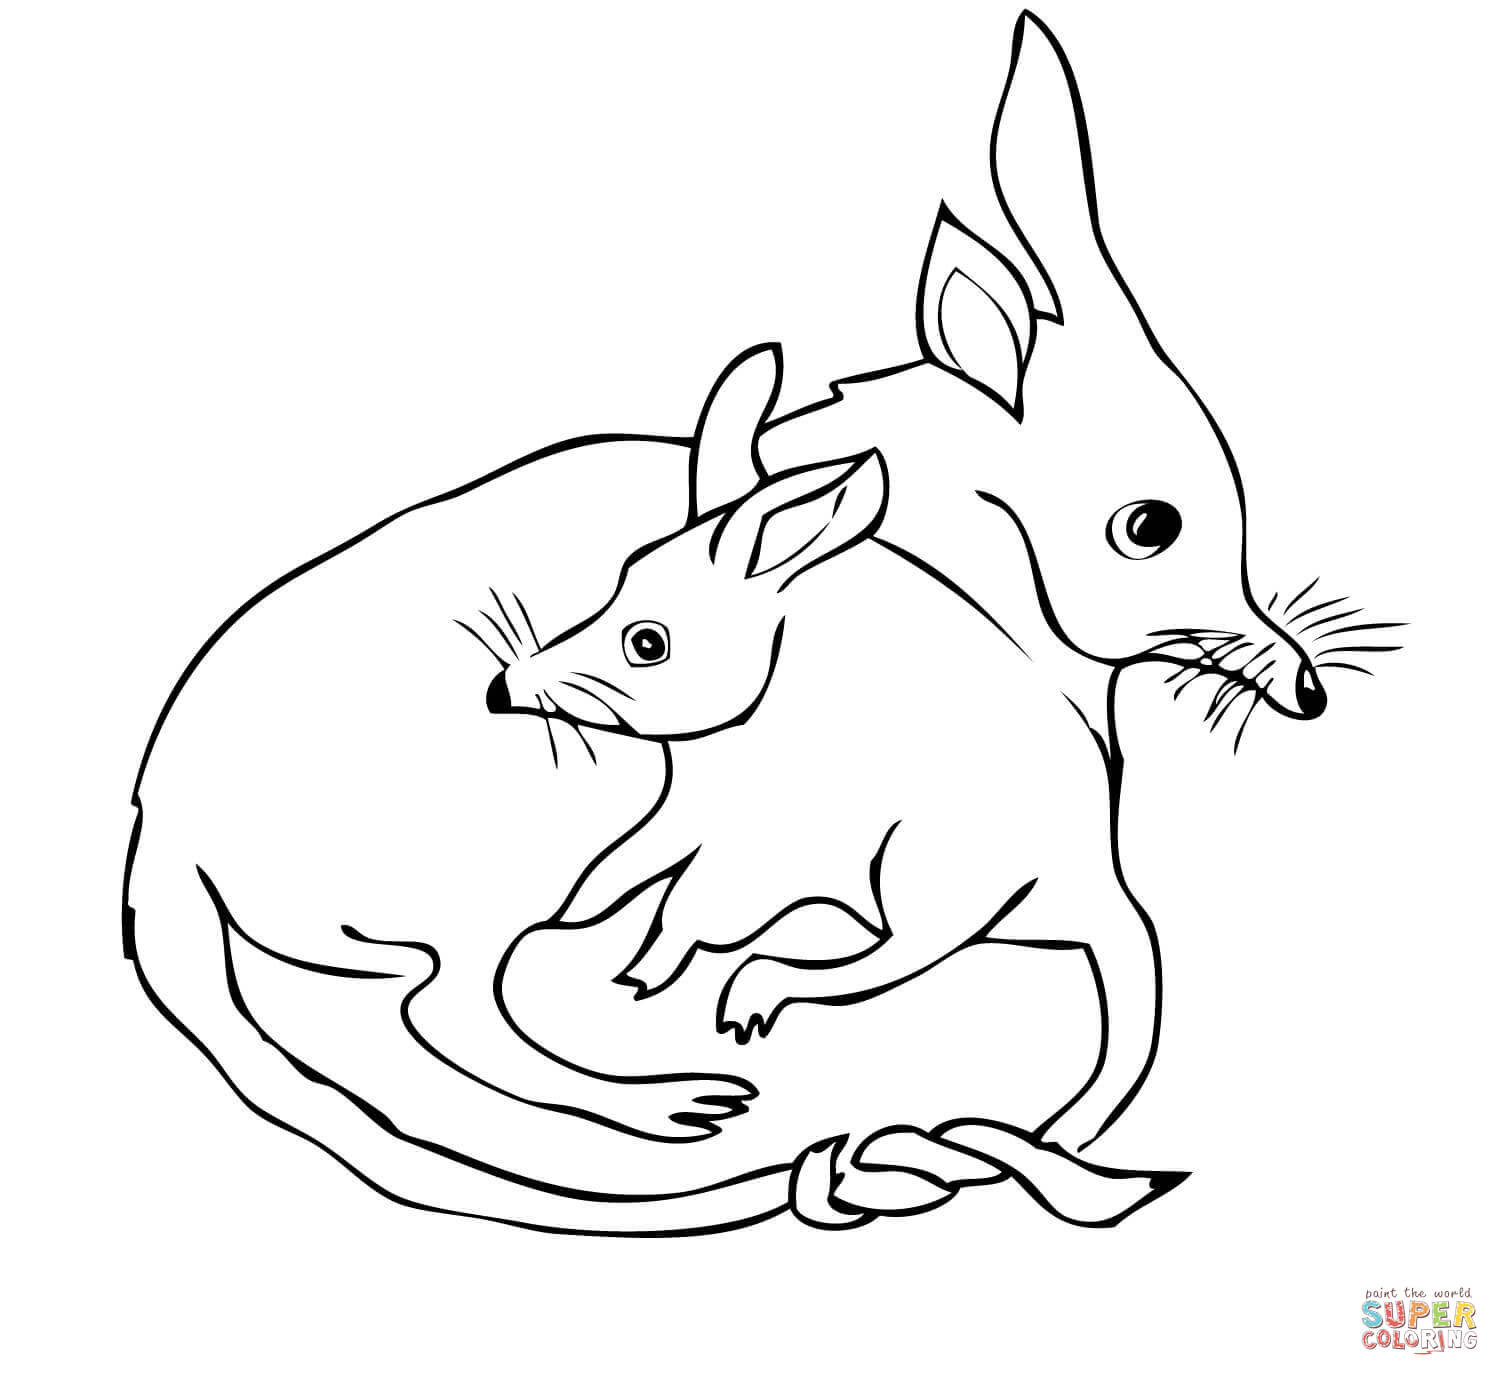 bilby pictures to colour playfulljoy australian easter bilby coloring in page to bilby pictures colour